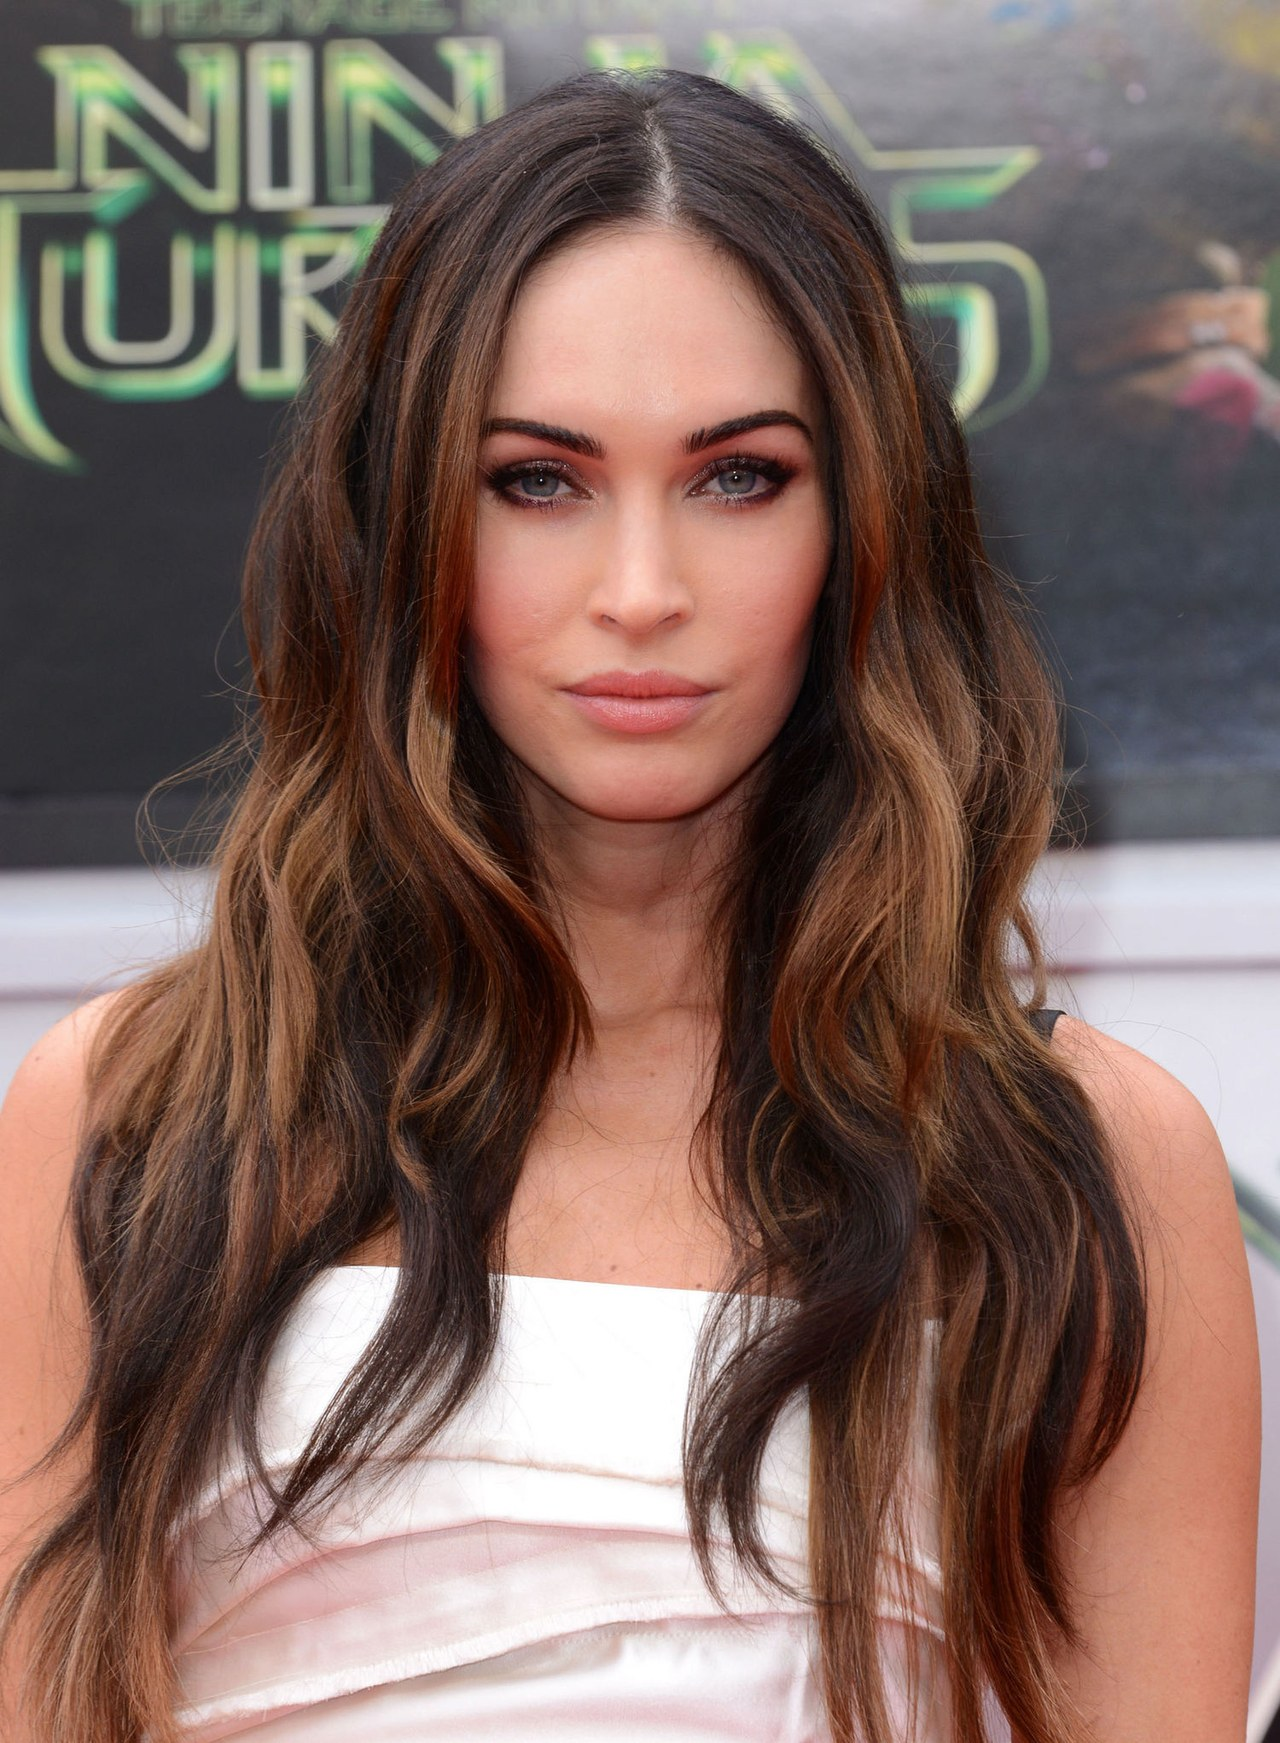 image - megan fox | dc movies wiki | fandom poweredwikia